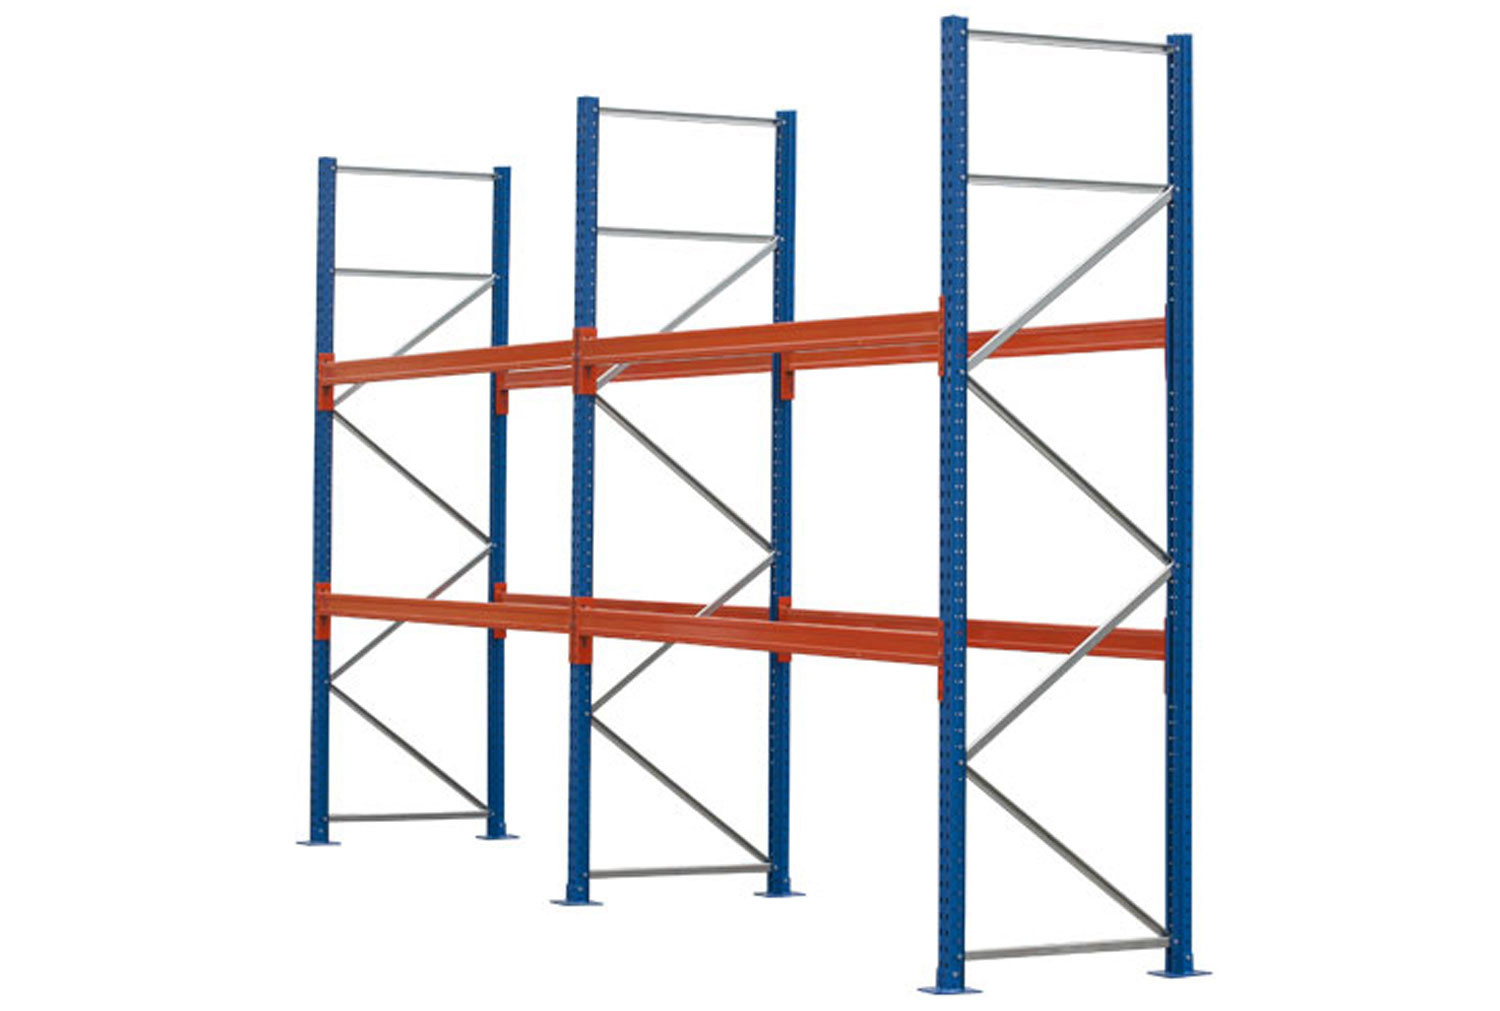 Pallet Racking Kit For 30 Pallets 14075wx3000h